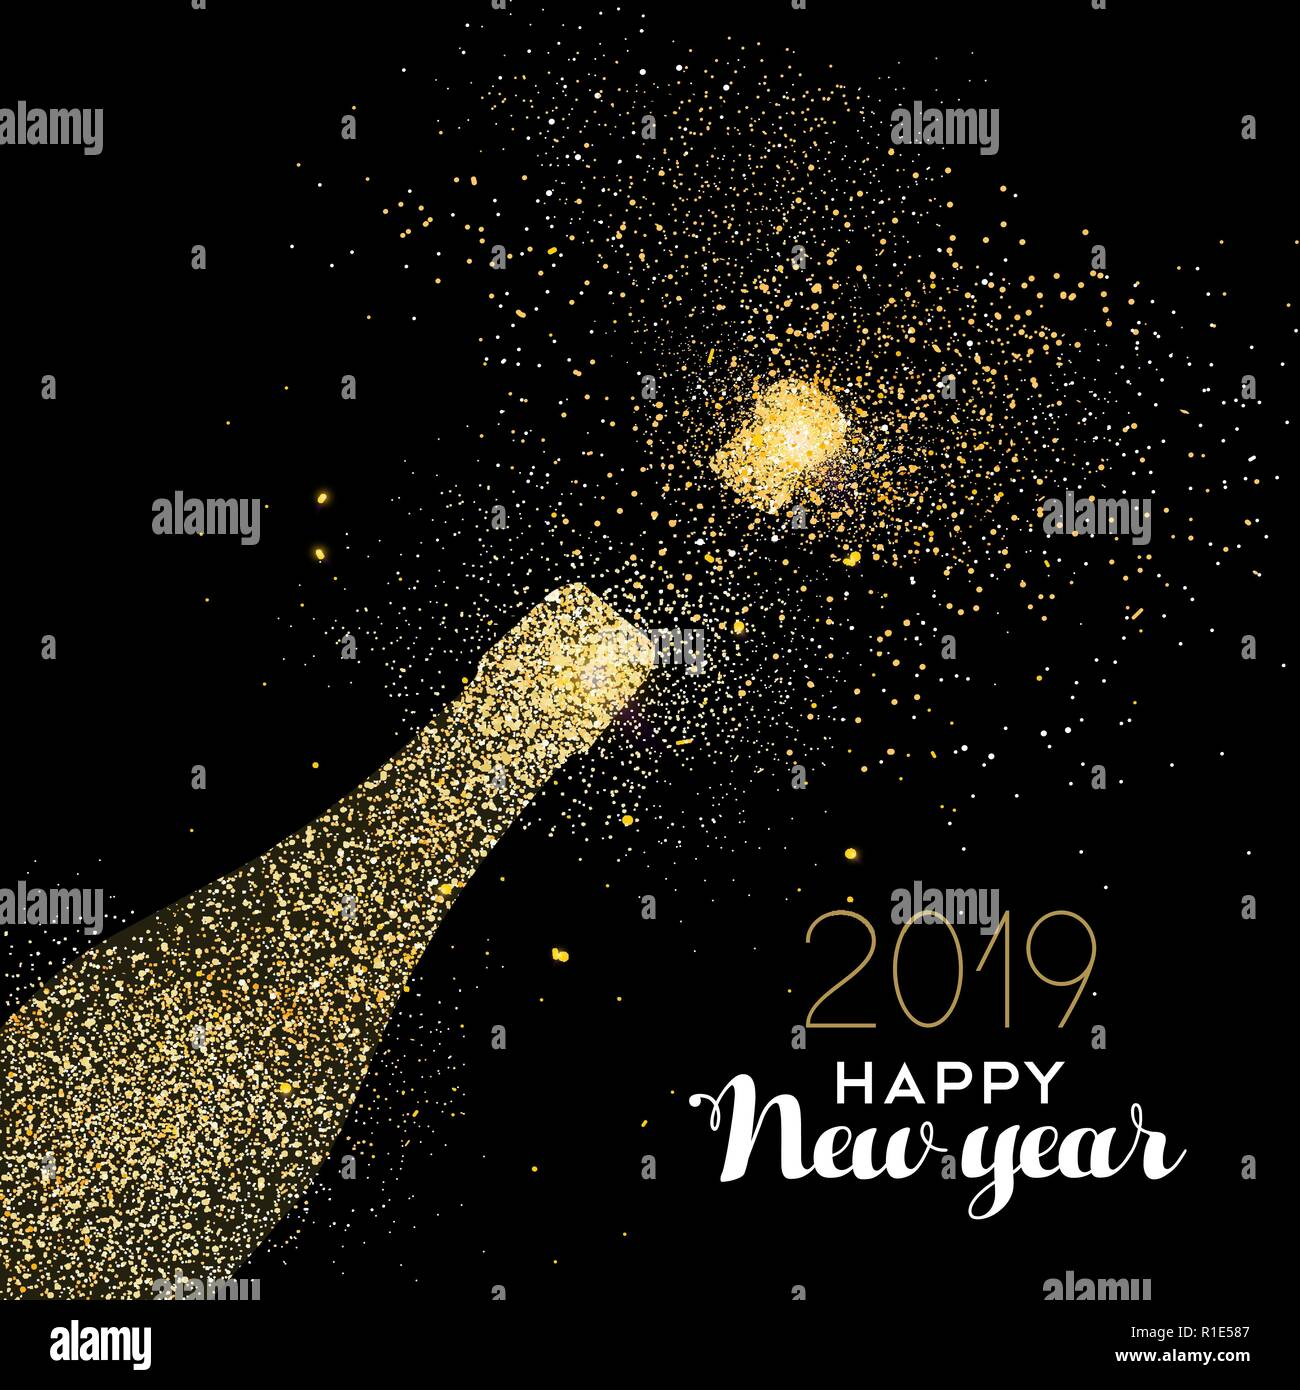 happy new year 2019 gold champagne bottle celebration made of realistic golden glitter dust ideal for holiday card or elegant party invitation